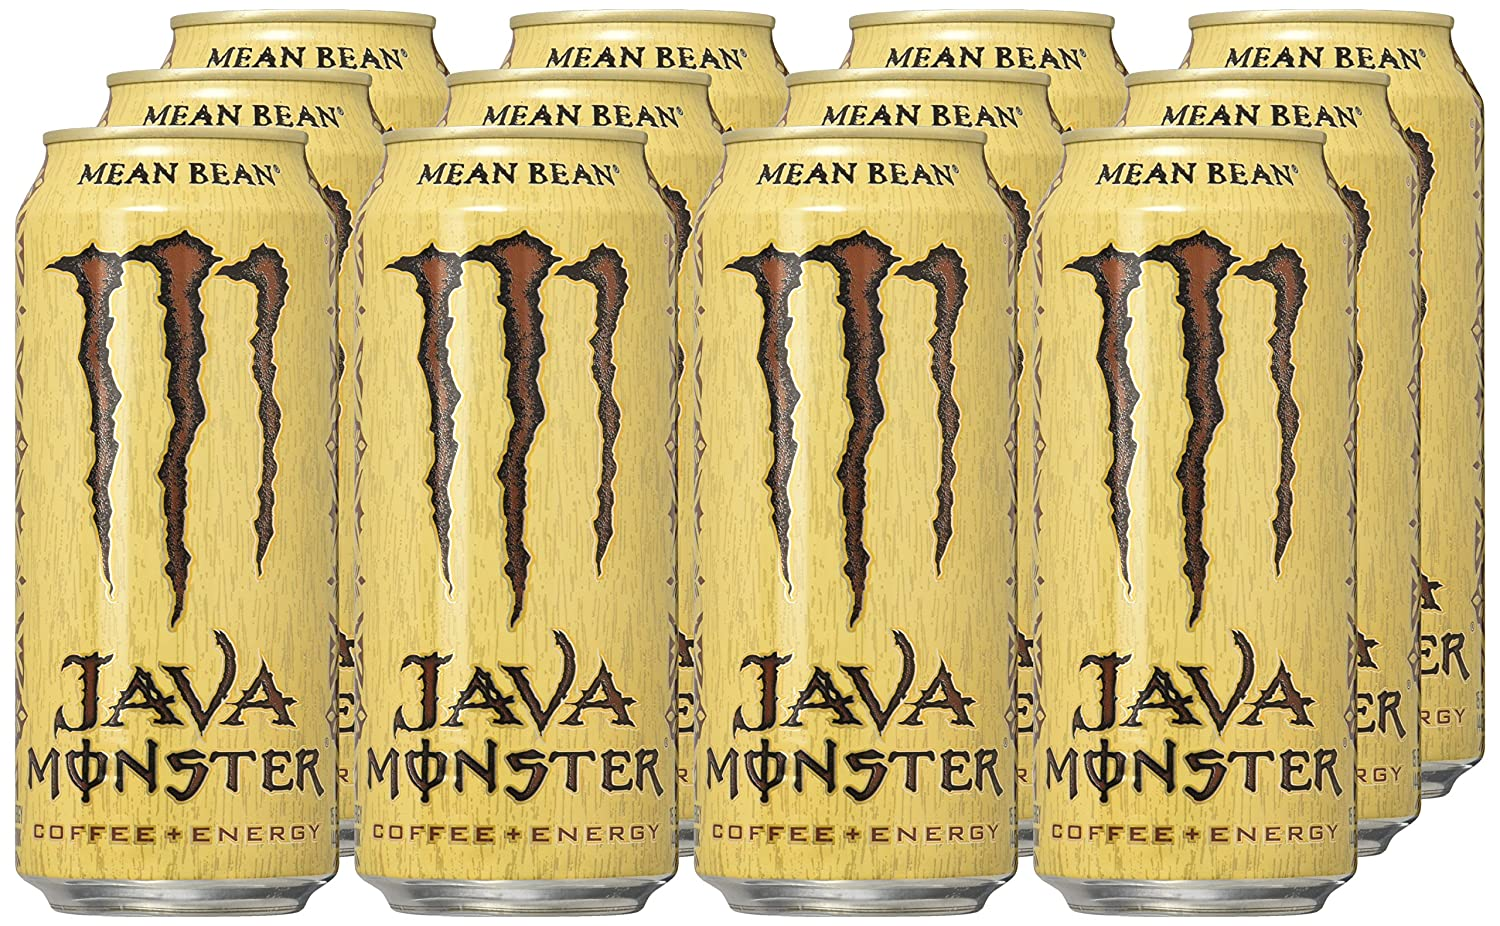 Number ten cans for sale - Java Monster Mean Bean 15 Ounce Pack Of 12 Amazon Com Grocery Gourmet Food